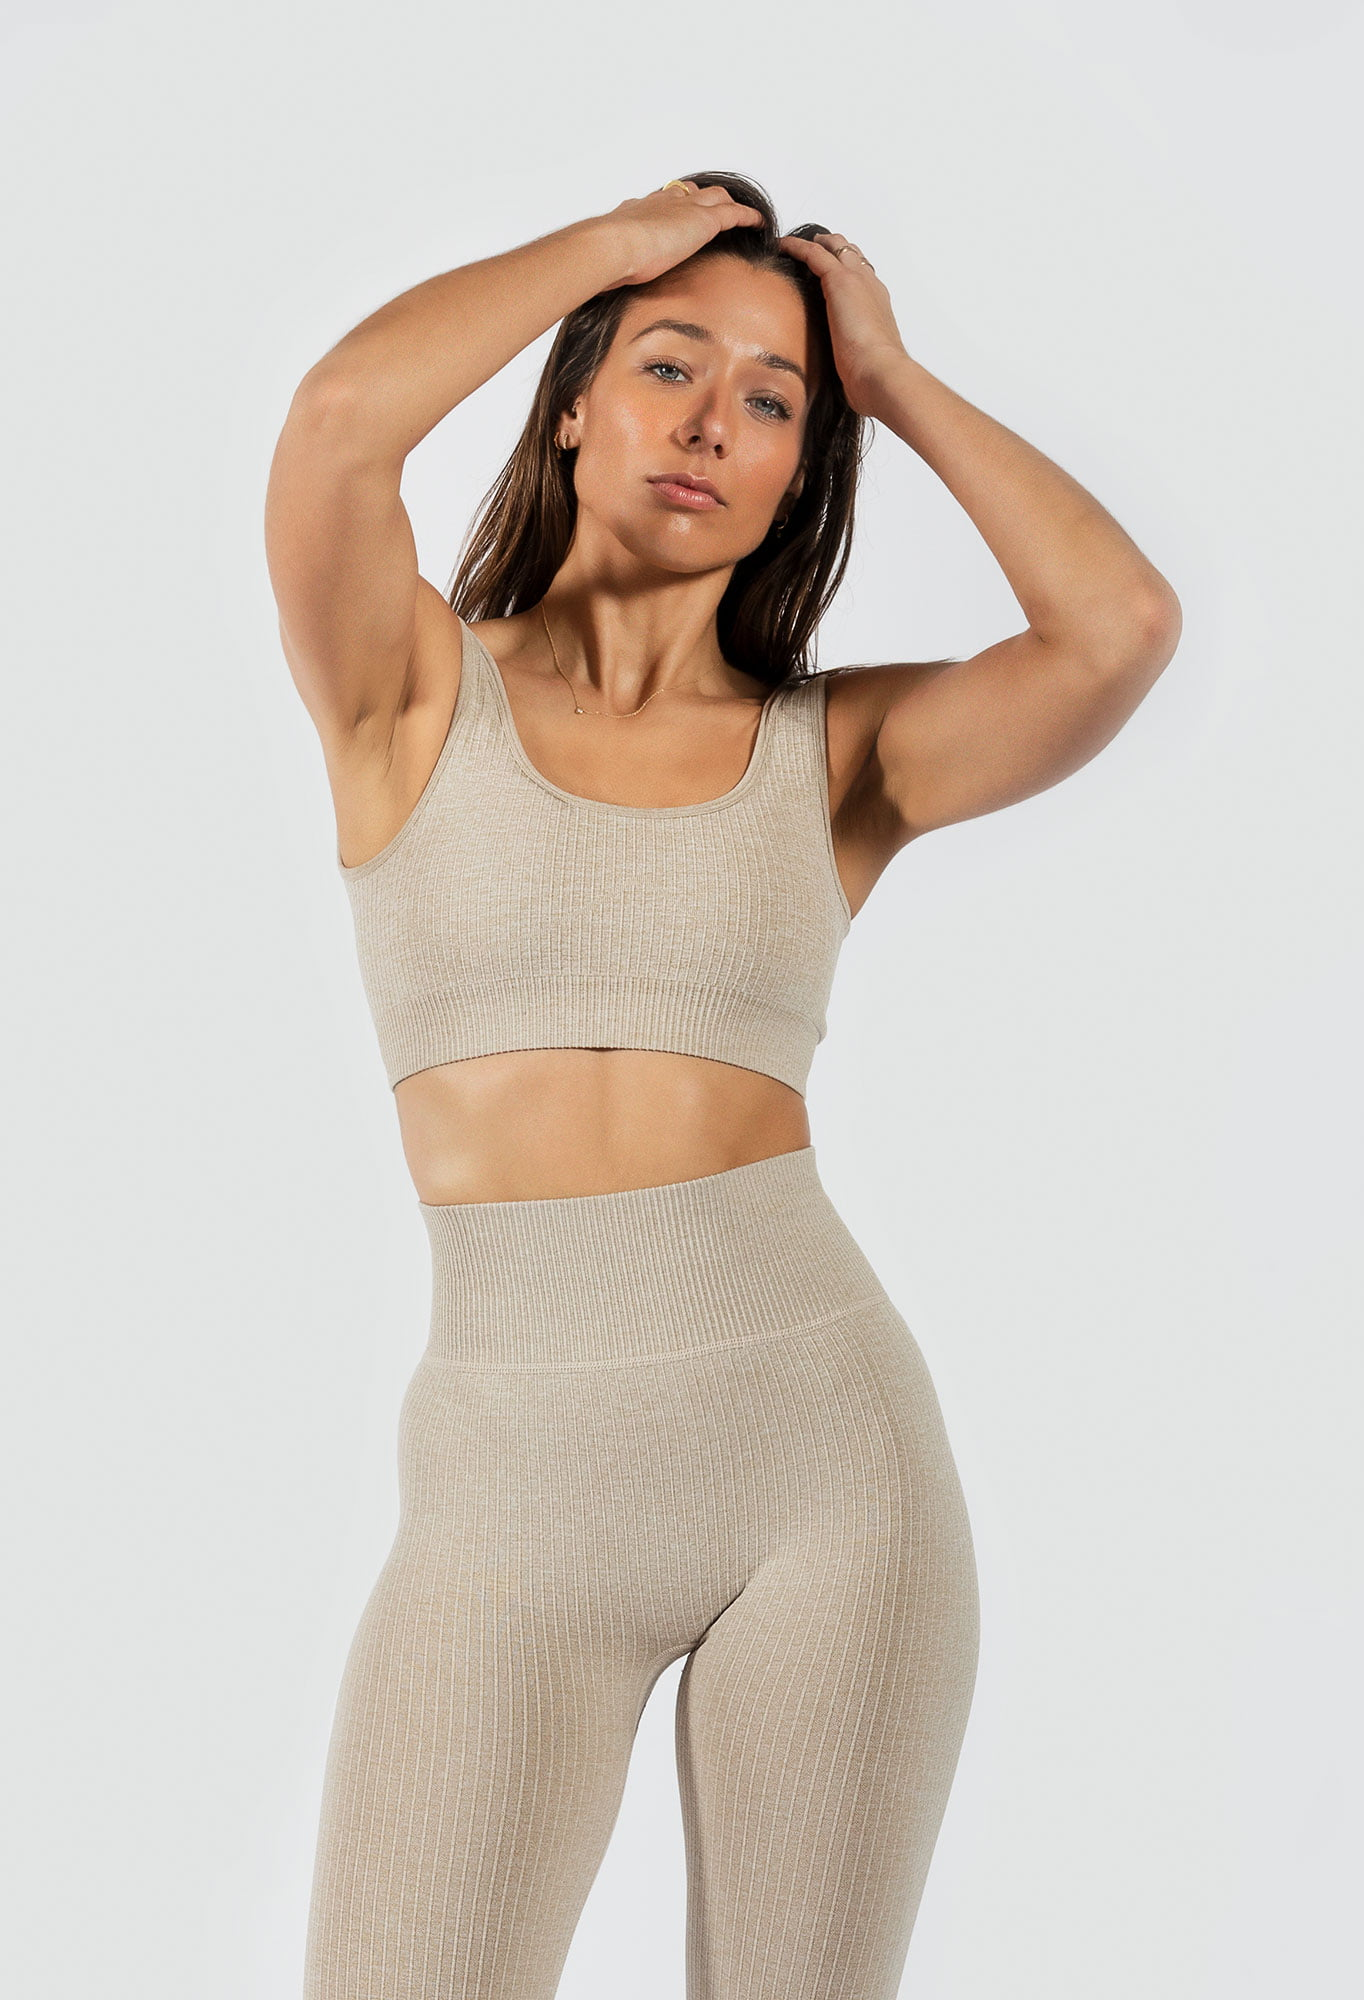 model wearing Muki ribbed seamless legging and sports bra in beige colour